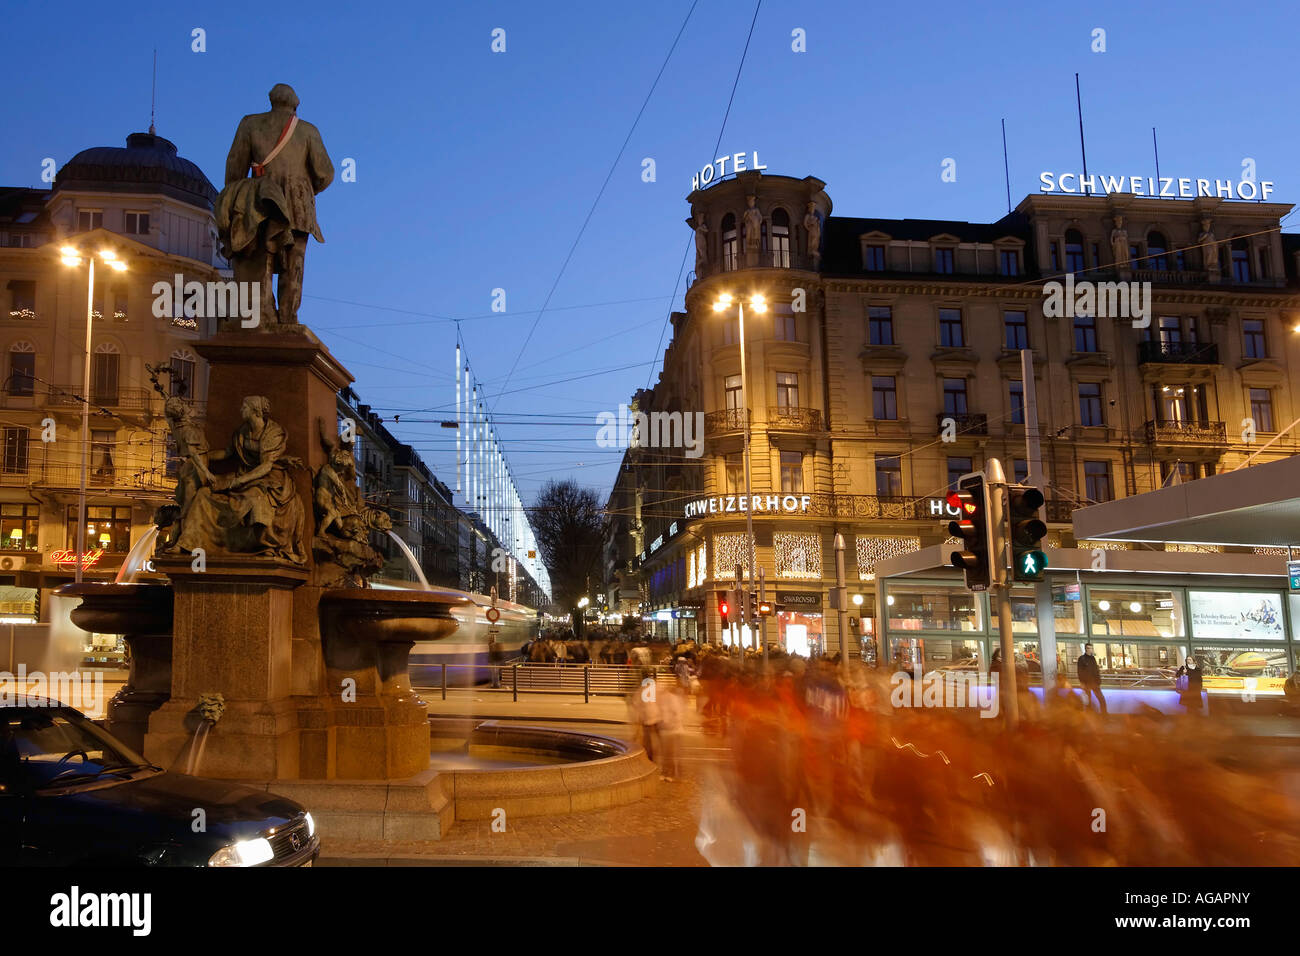 Switzerland Zurich view from railway station at Bahnhofstrasse at twilight Chistmas illumination - Stock Image